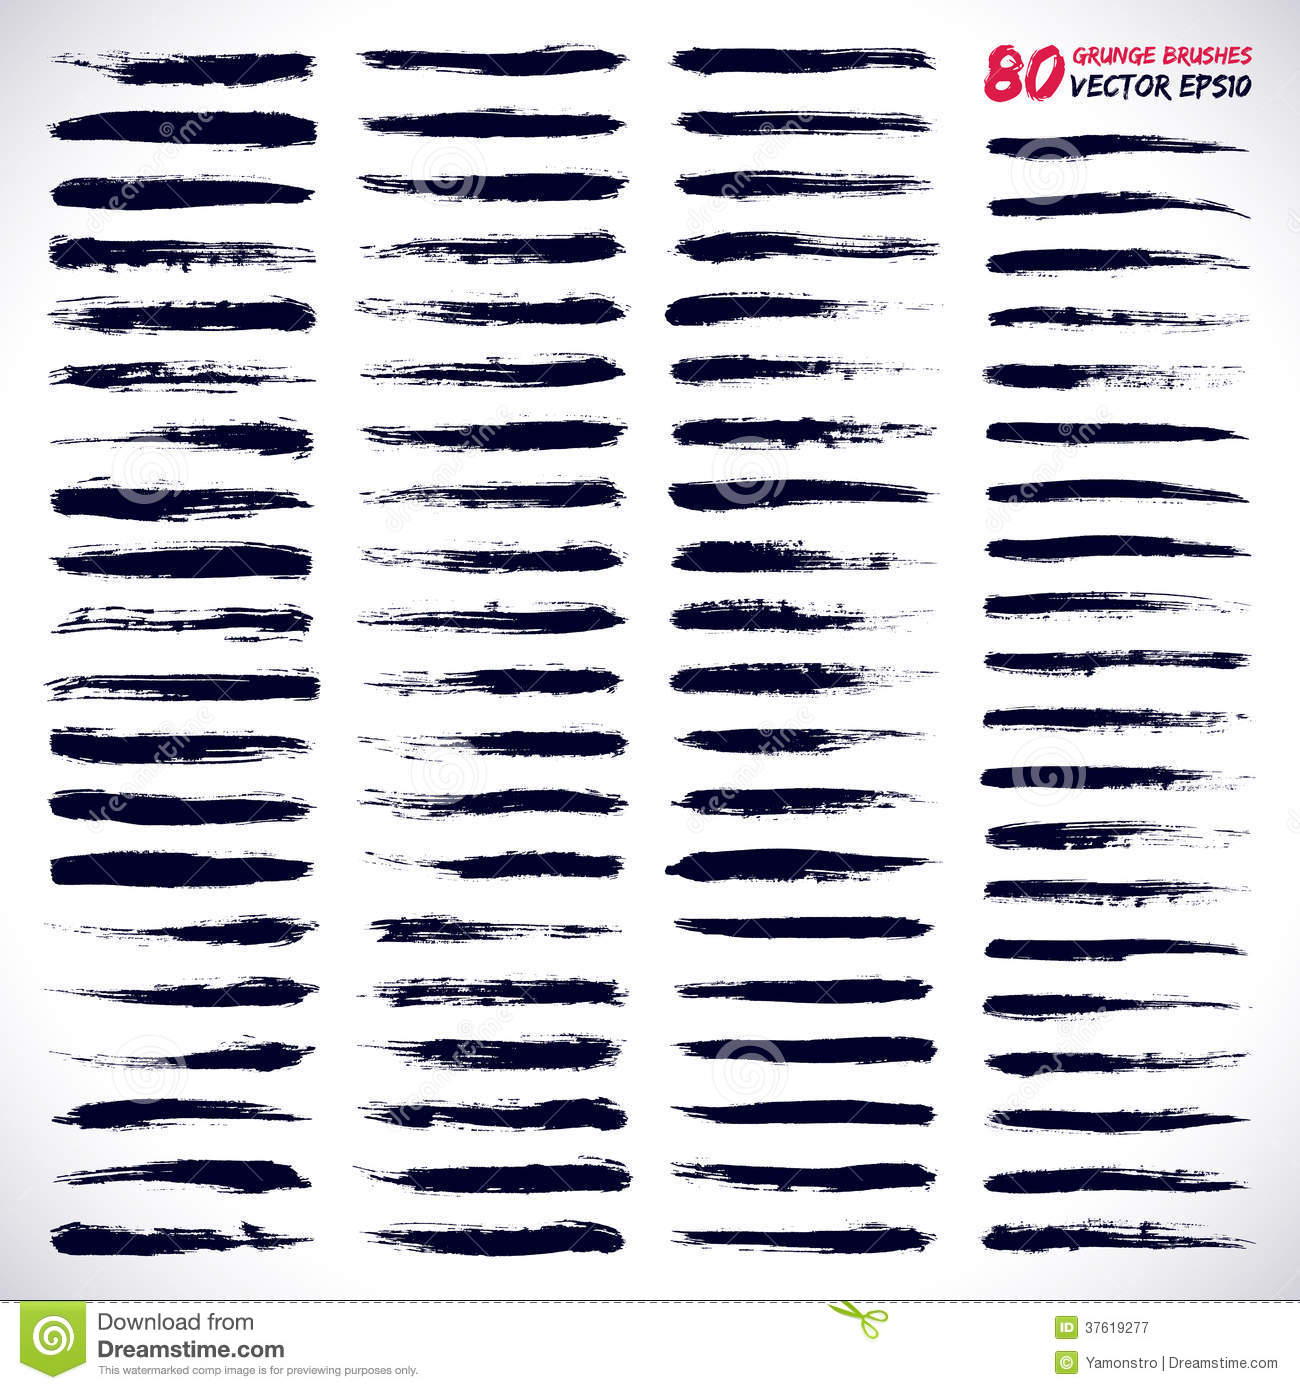 80 Hand Drawn Vector Grunge Brushes Stock Vector - Illustration of